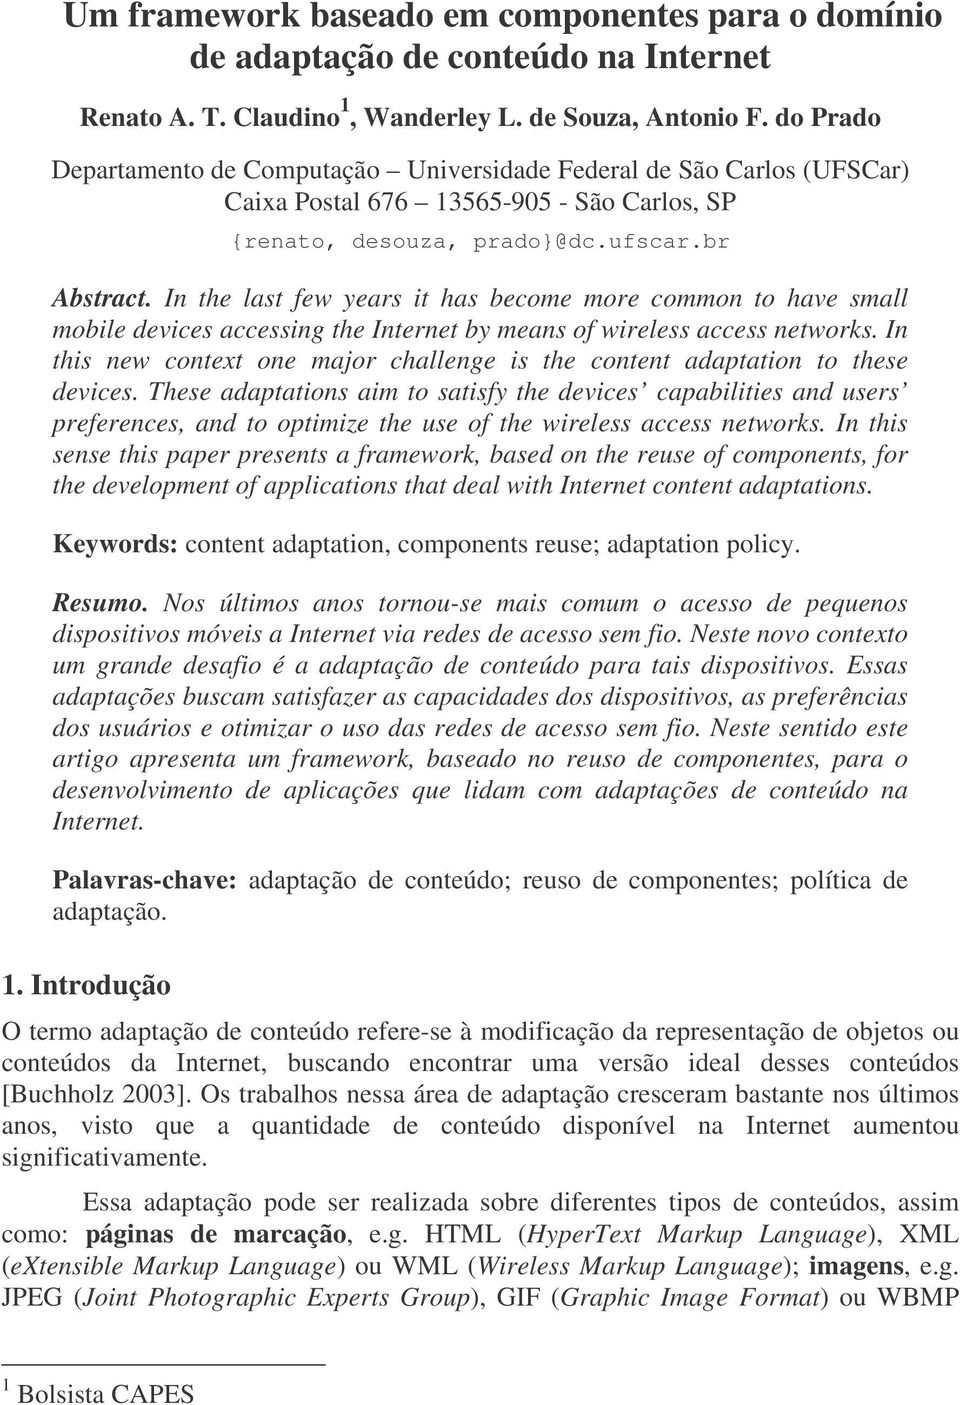 In the last few years it has become more common to have small mobile devices accessing the Internet by means of wireless access networks.